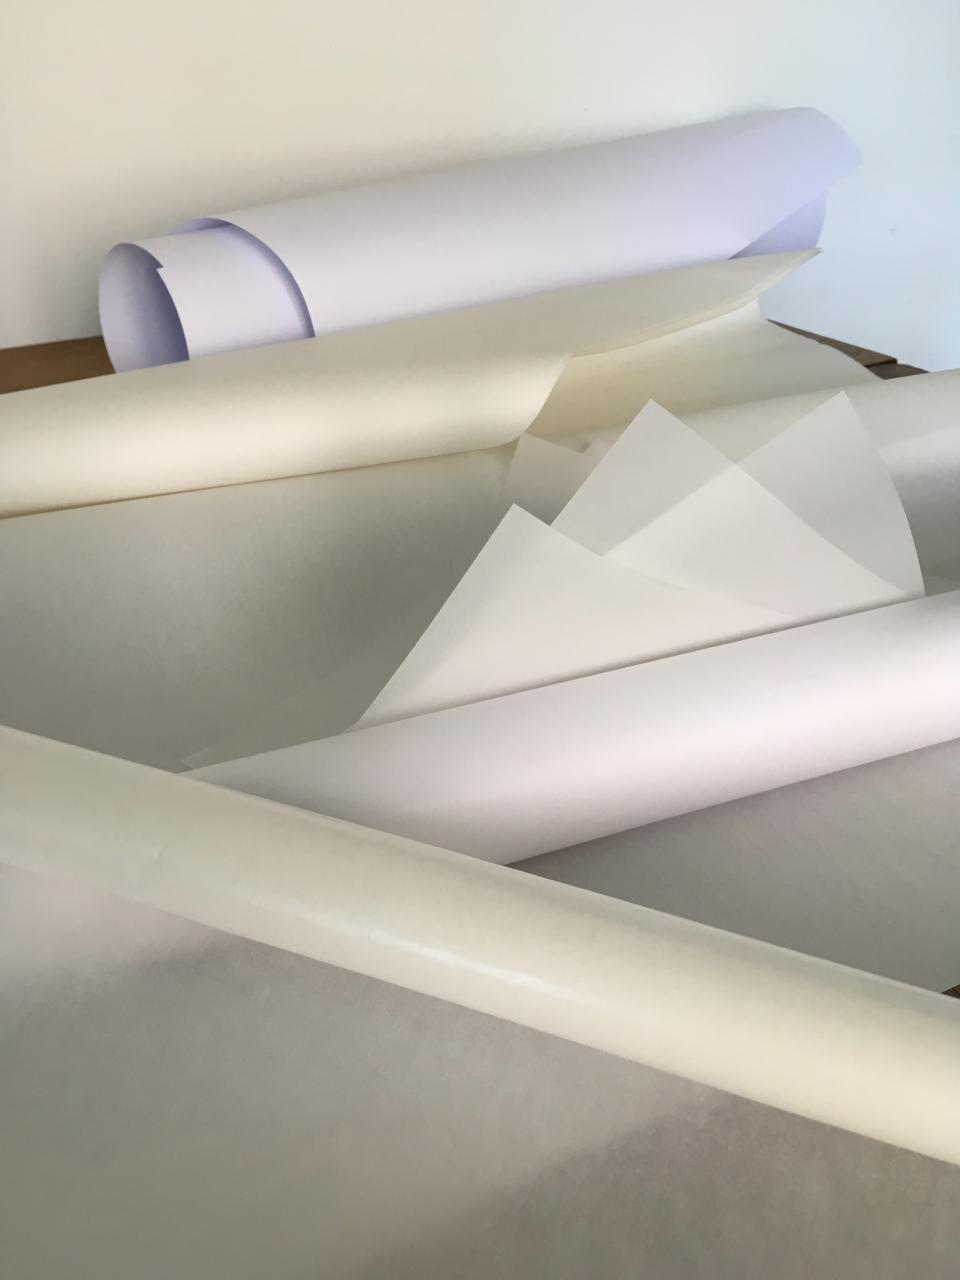 more folds paper rolls